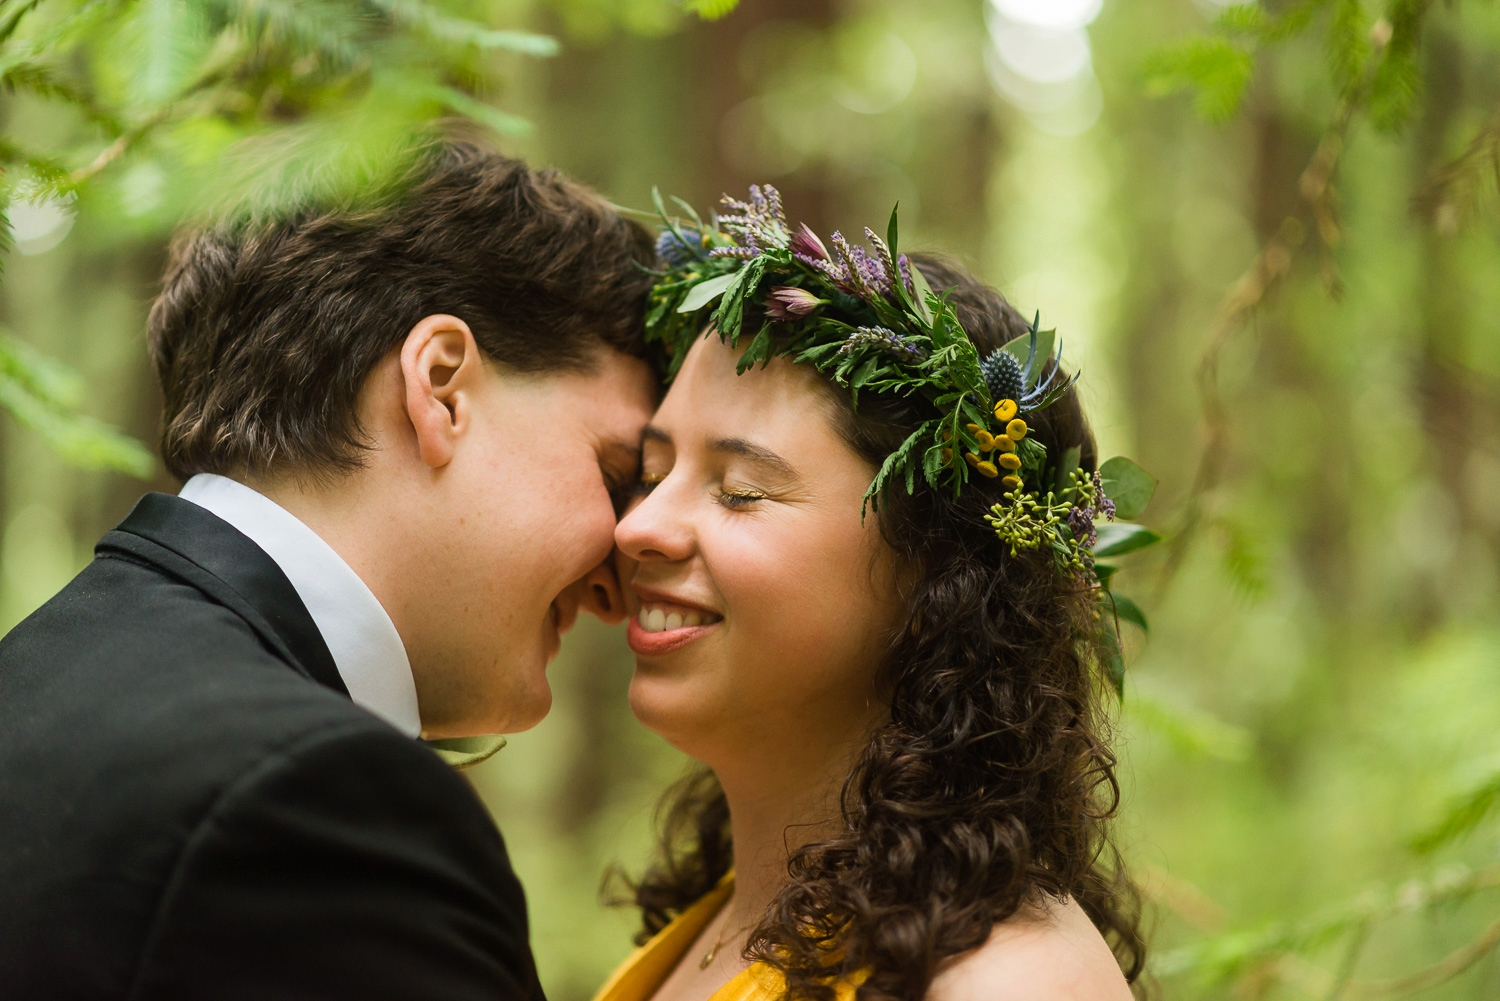 Bride and groom smiling under a tree